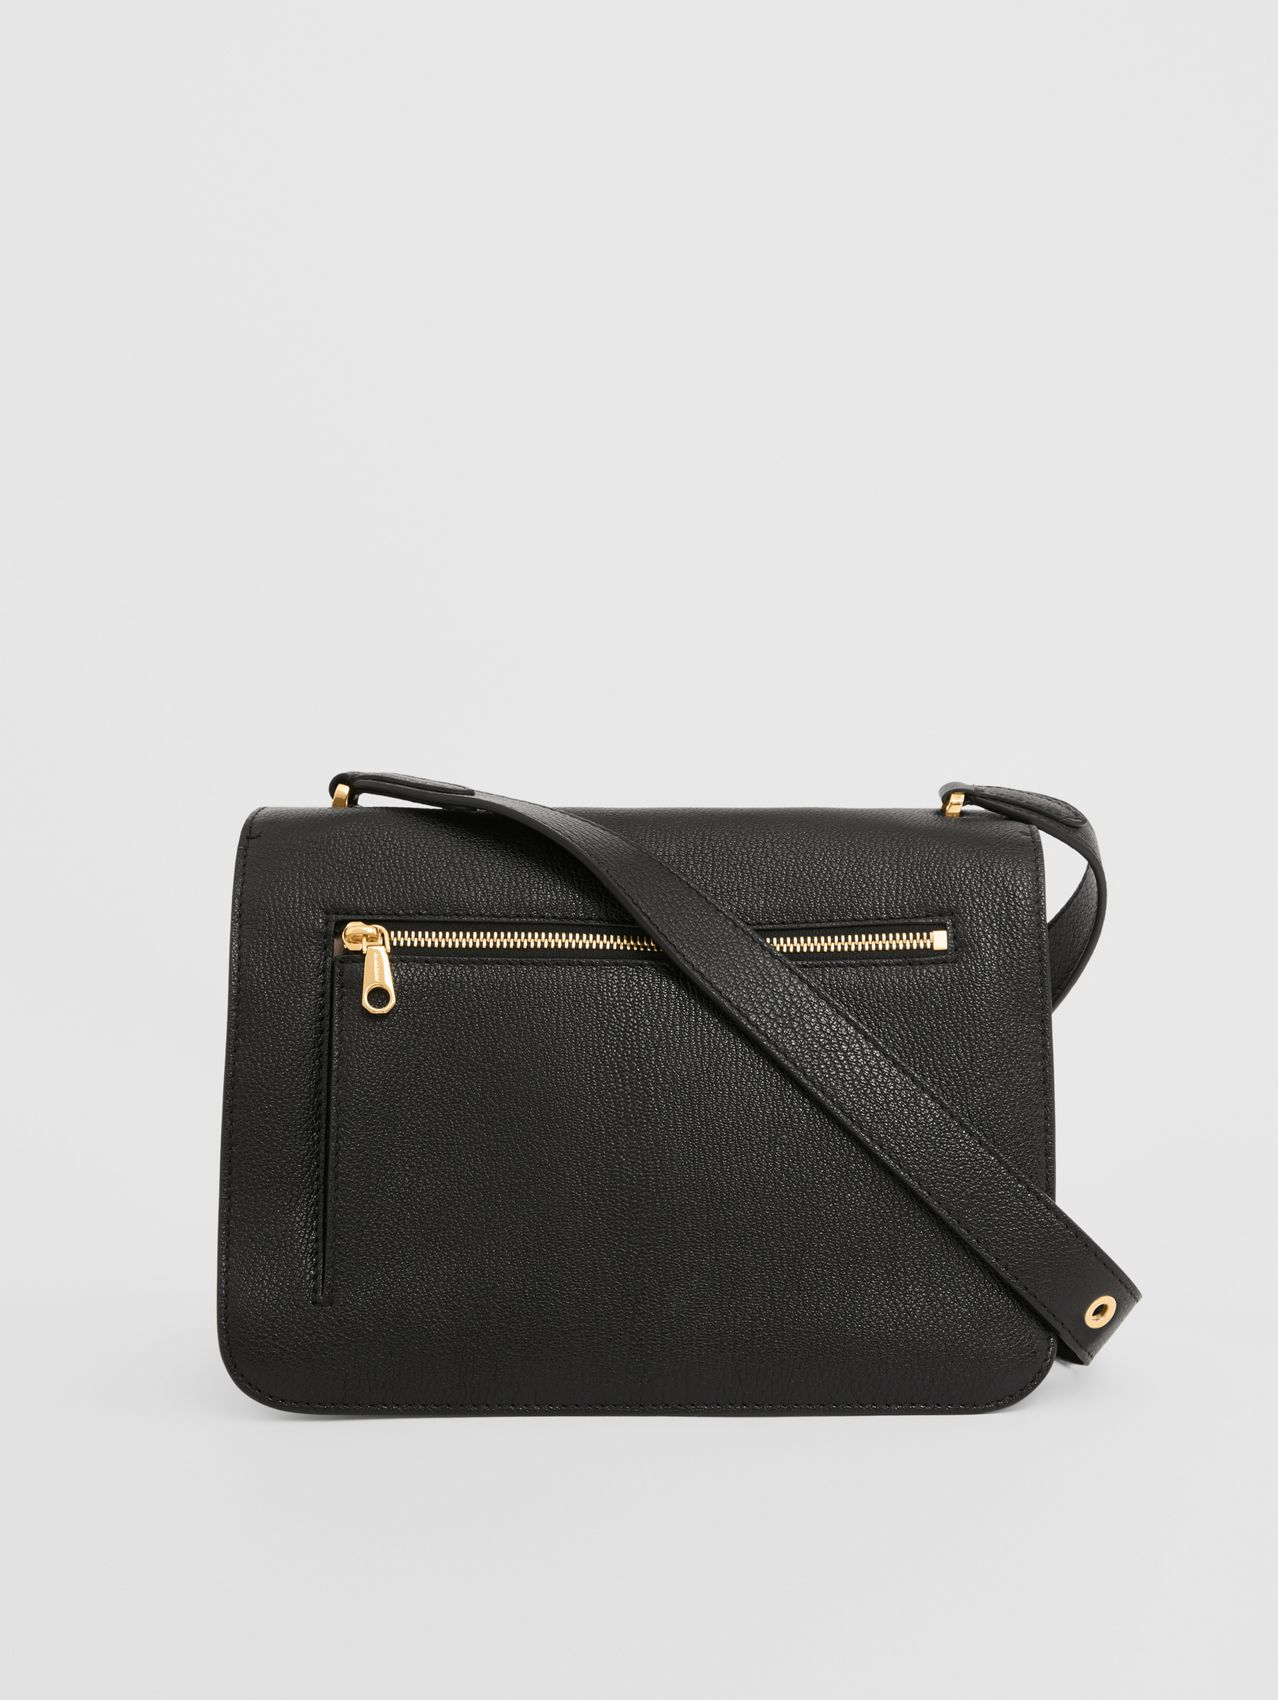 Medium Grainy Leather Alice Bag in Black